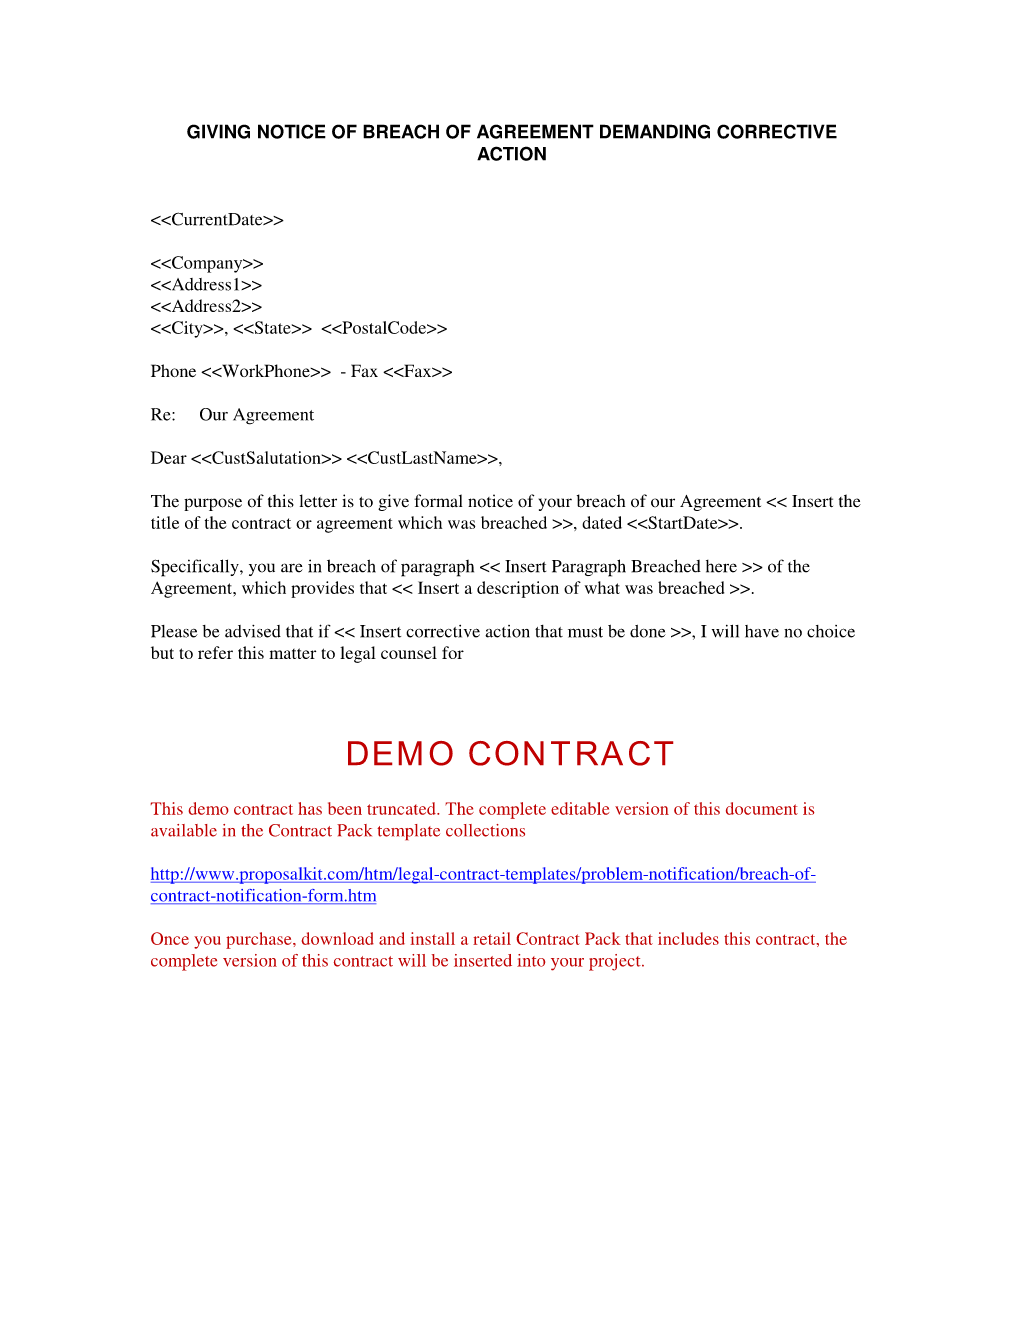 Breach Of Contract Notification Form Problem